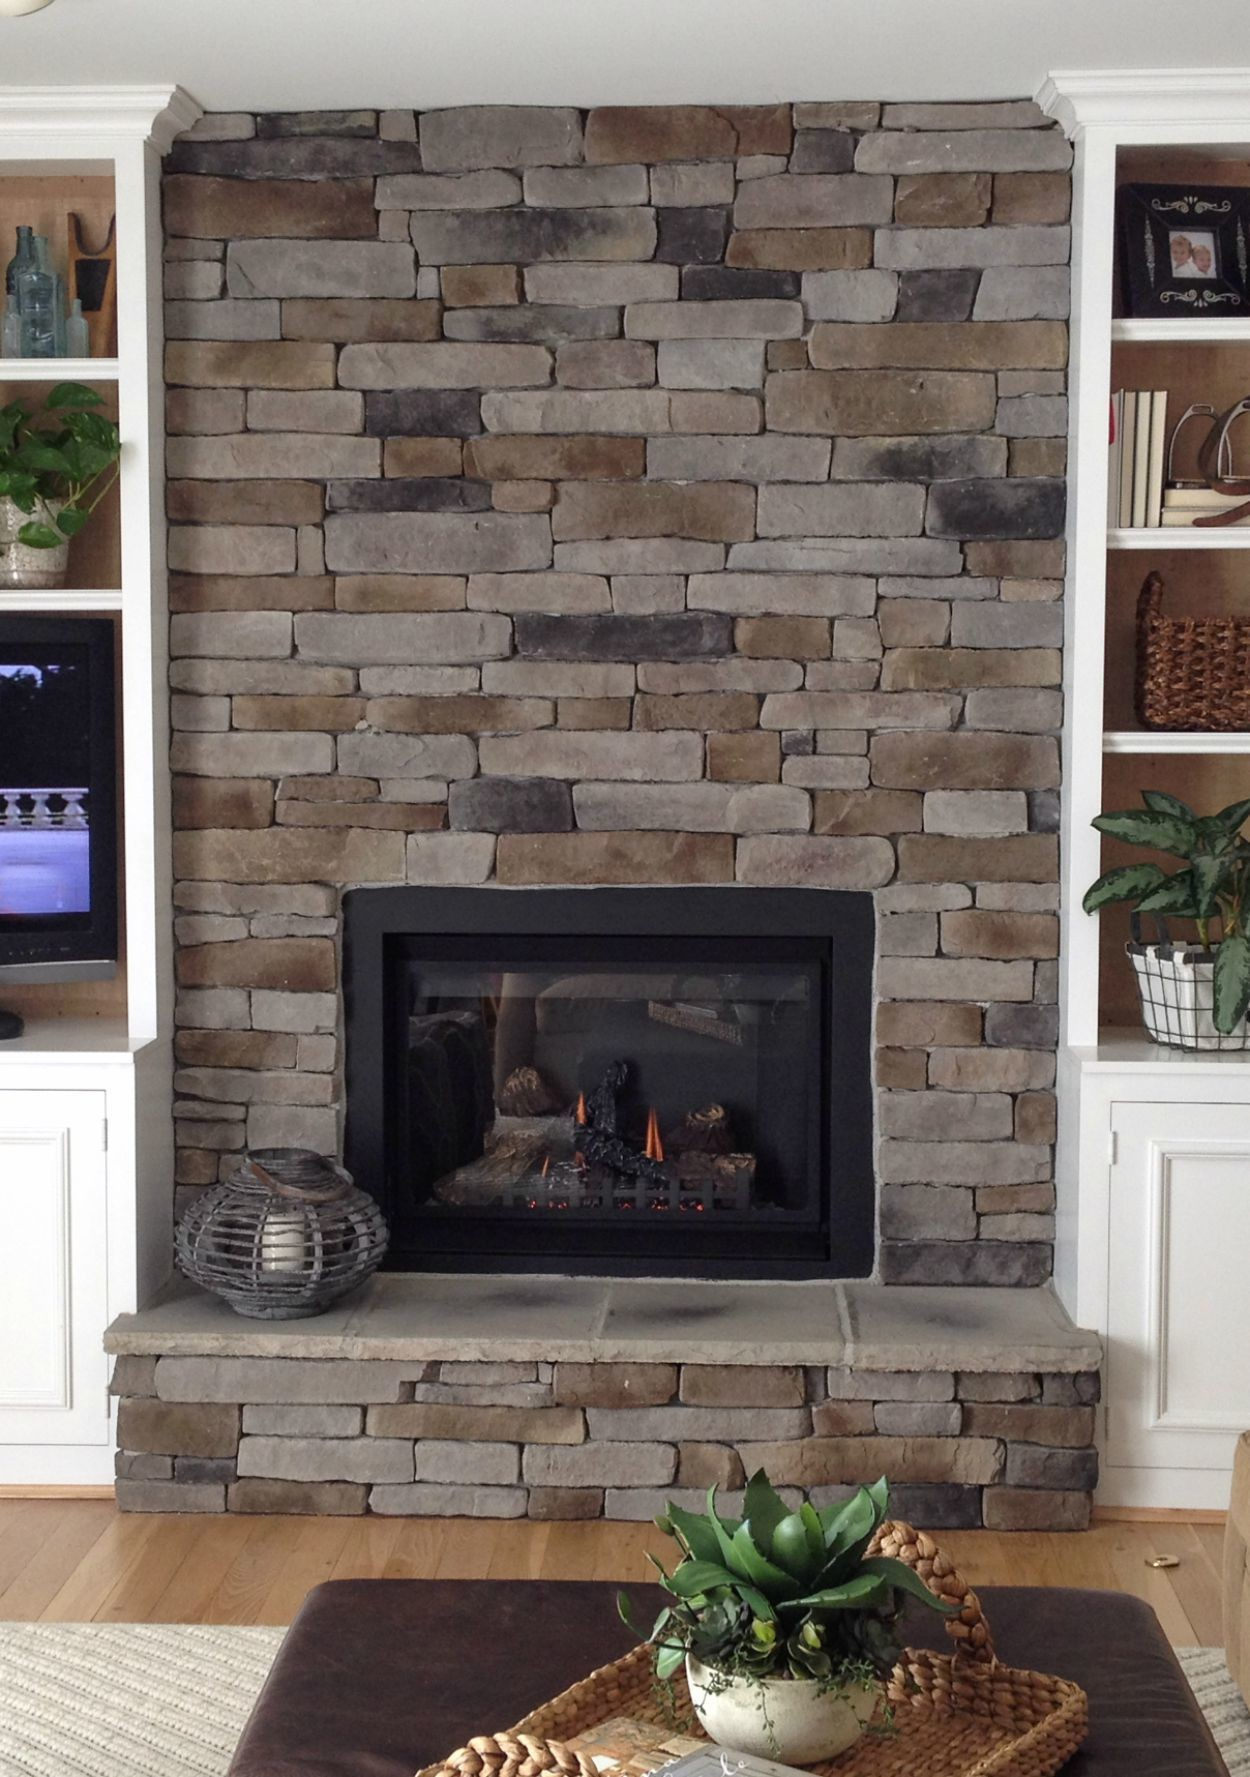 How to create the stacked stone fireplace look on a budget martha stewart - Images of stone fireplaces ...